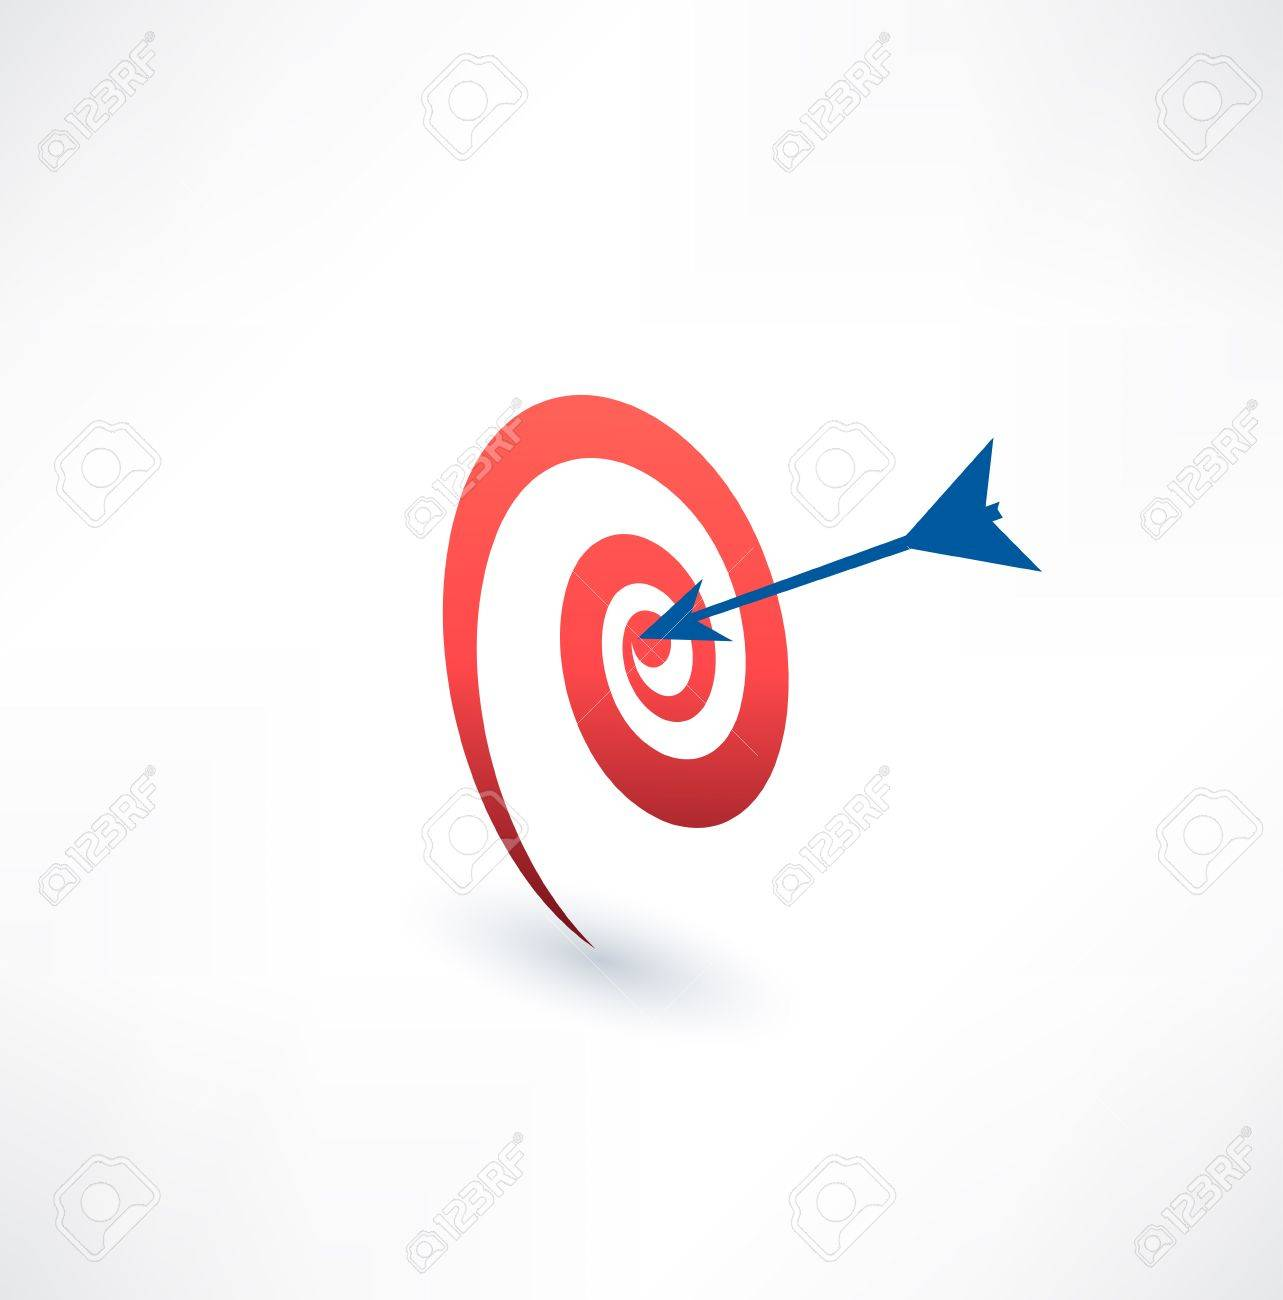 Target and arrow icon. The concept of purpose. Logo design. - 33673038